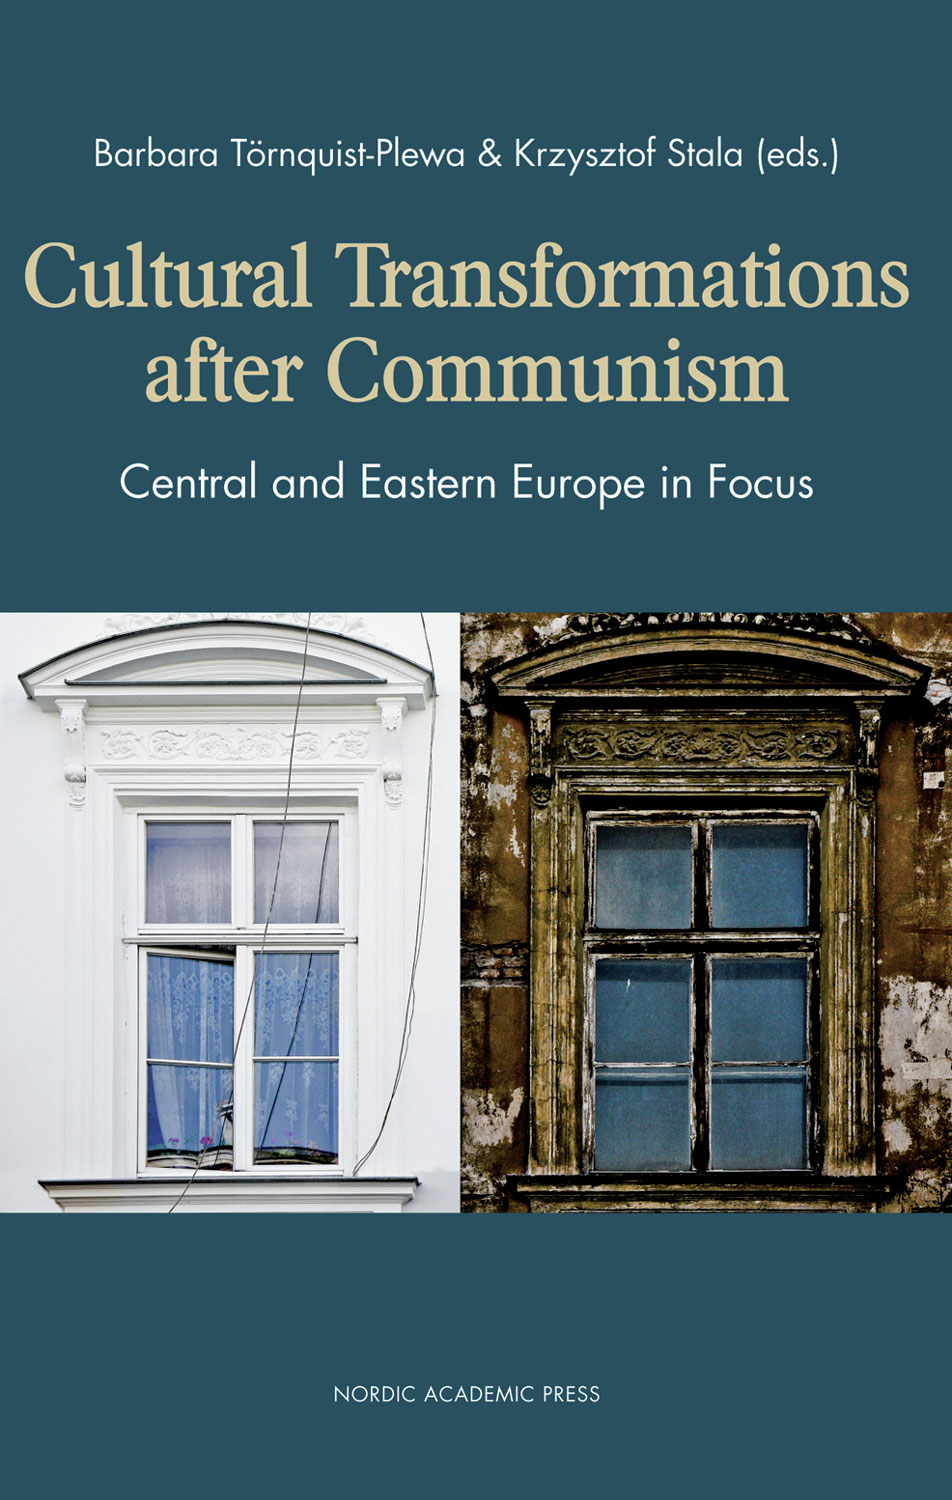 Cultural Transformations After Communism: Central and Eastern Europe in Focus